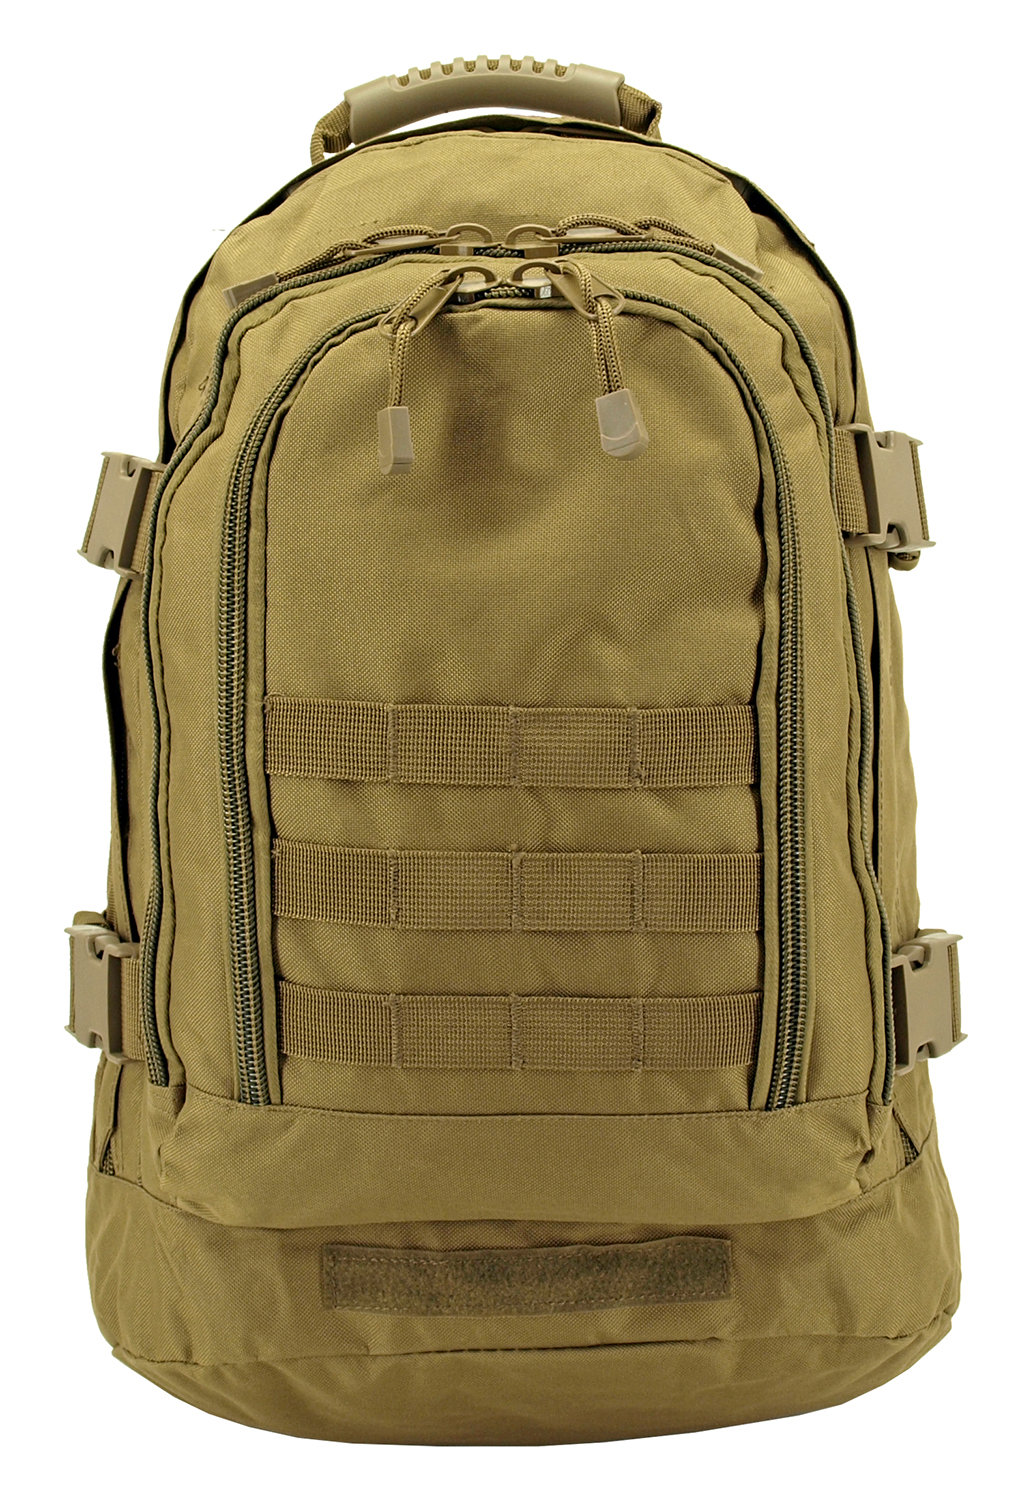 Expandable Tactical Backpack - Desert Tan